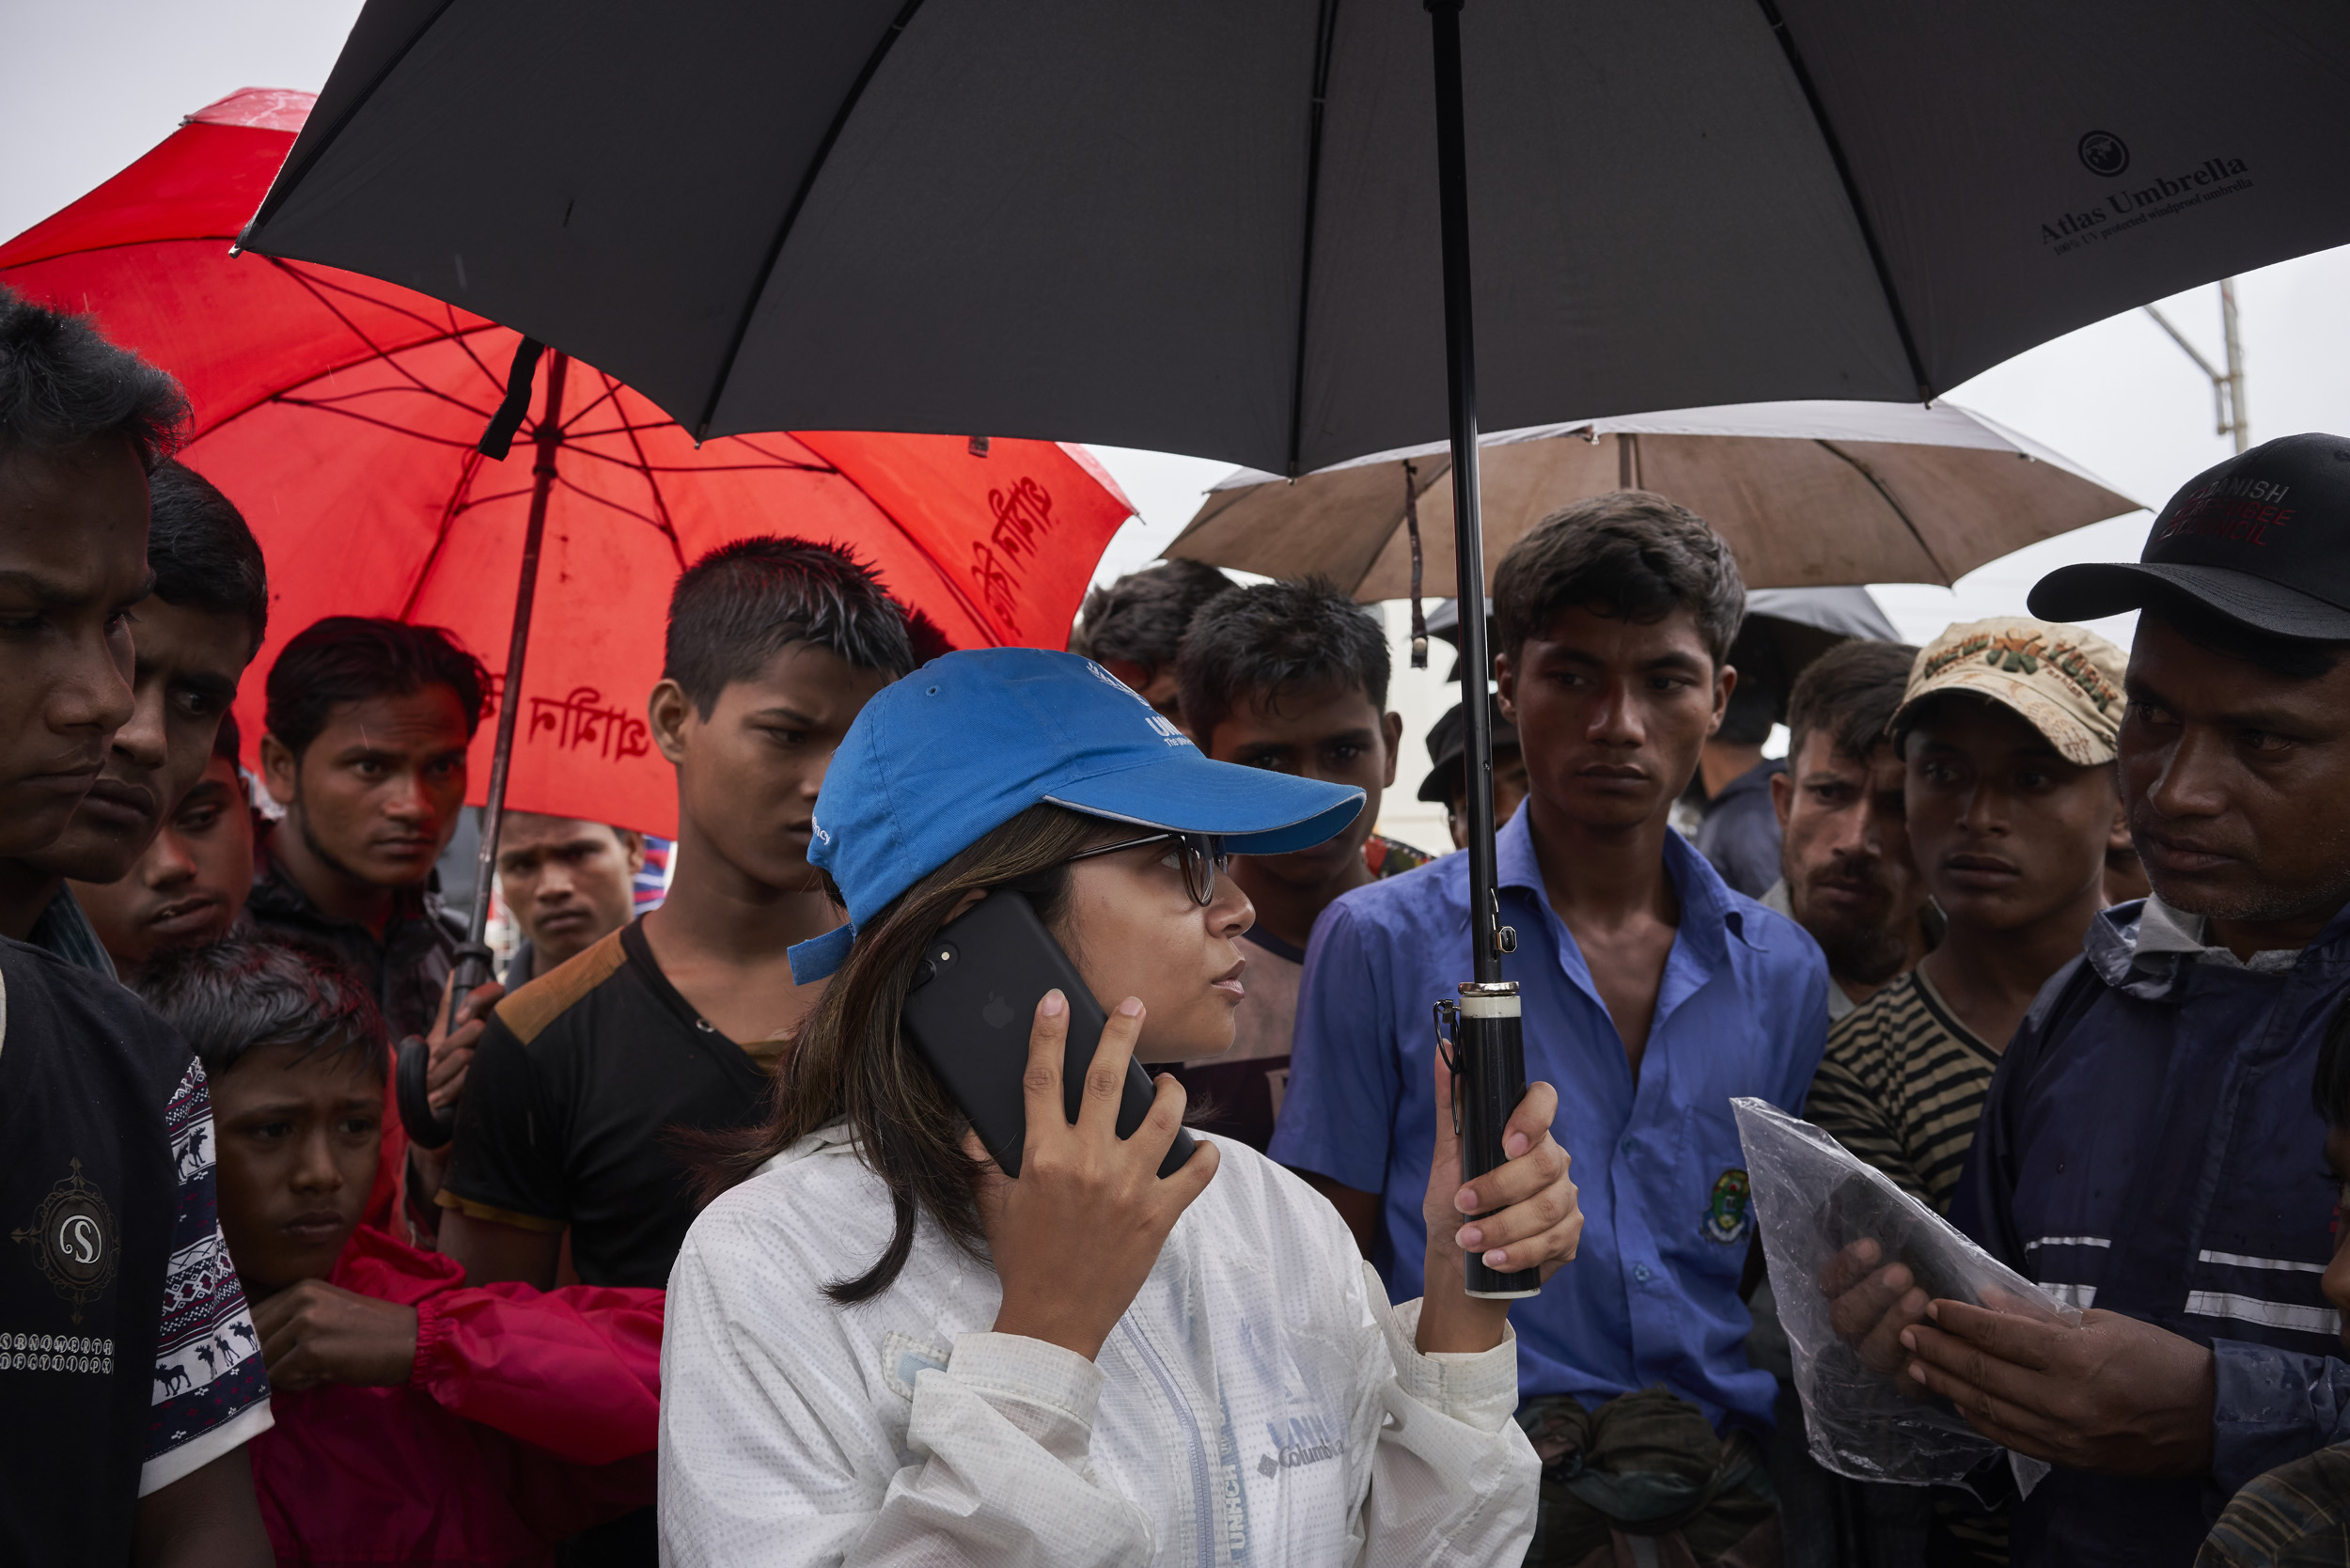 UNHCR Senior Field Associate Sarah Jabin, center, coordinates the relocation of 36 Rohingya refugee families, more than 150 people, from hazardous landslide and flood-prone zones to newly built shelters in an area that has been levelled, in Kutupalong Expansion Site for Rohingya refugees, Ukhia, Cox's Bazar District, Bangladesh.